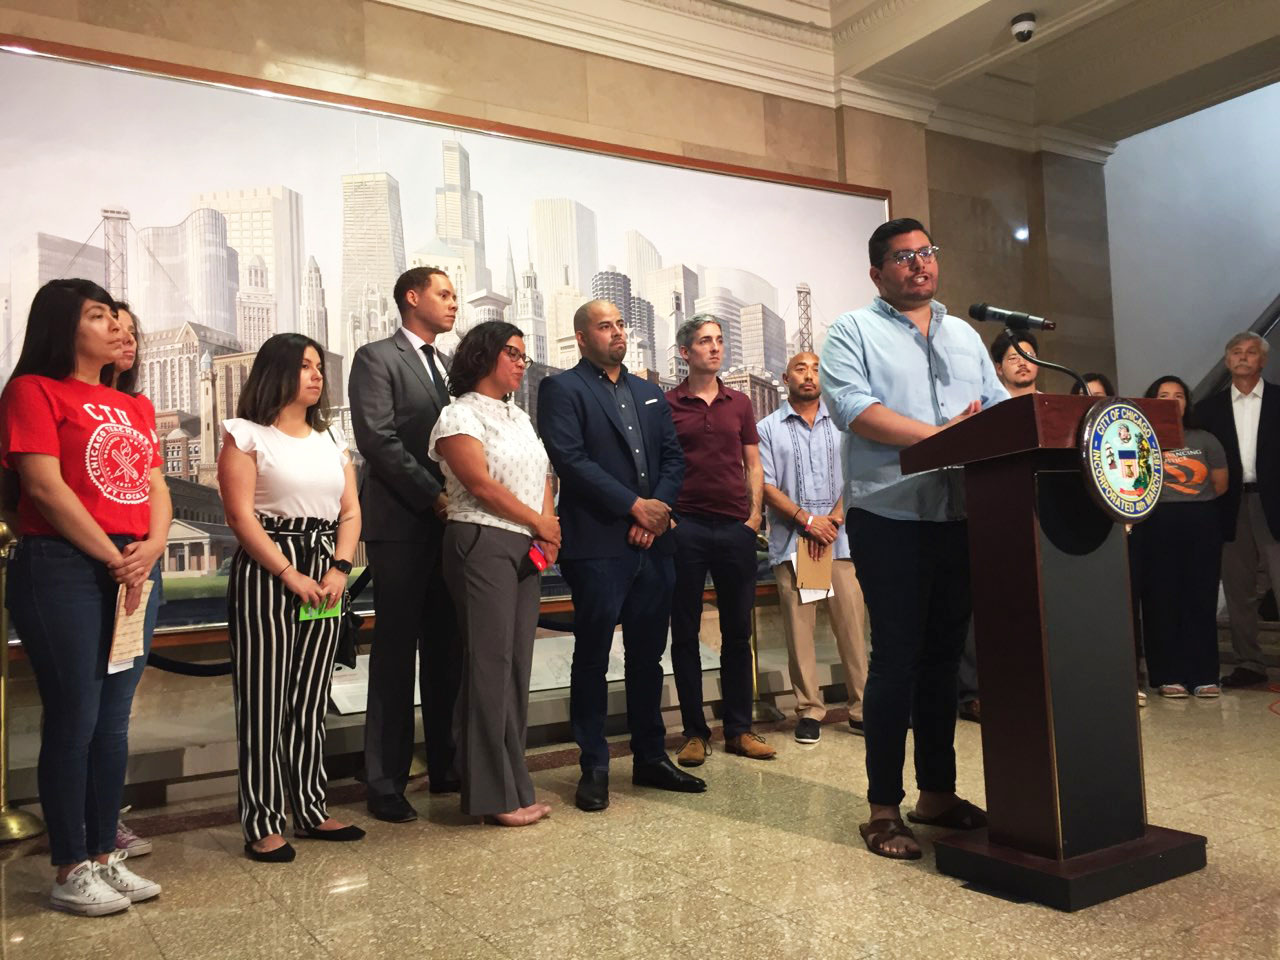 Chicago Aldermen Lean On City Workers To Spot ICE Agents